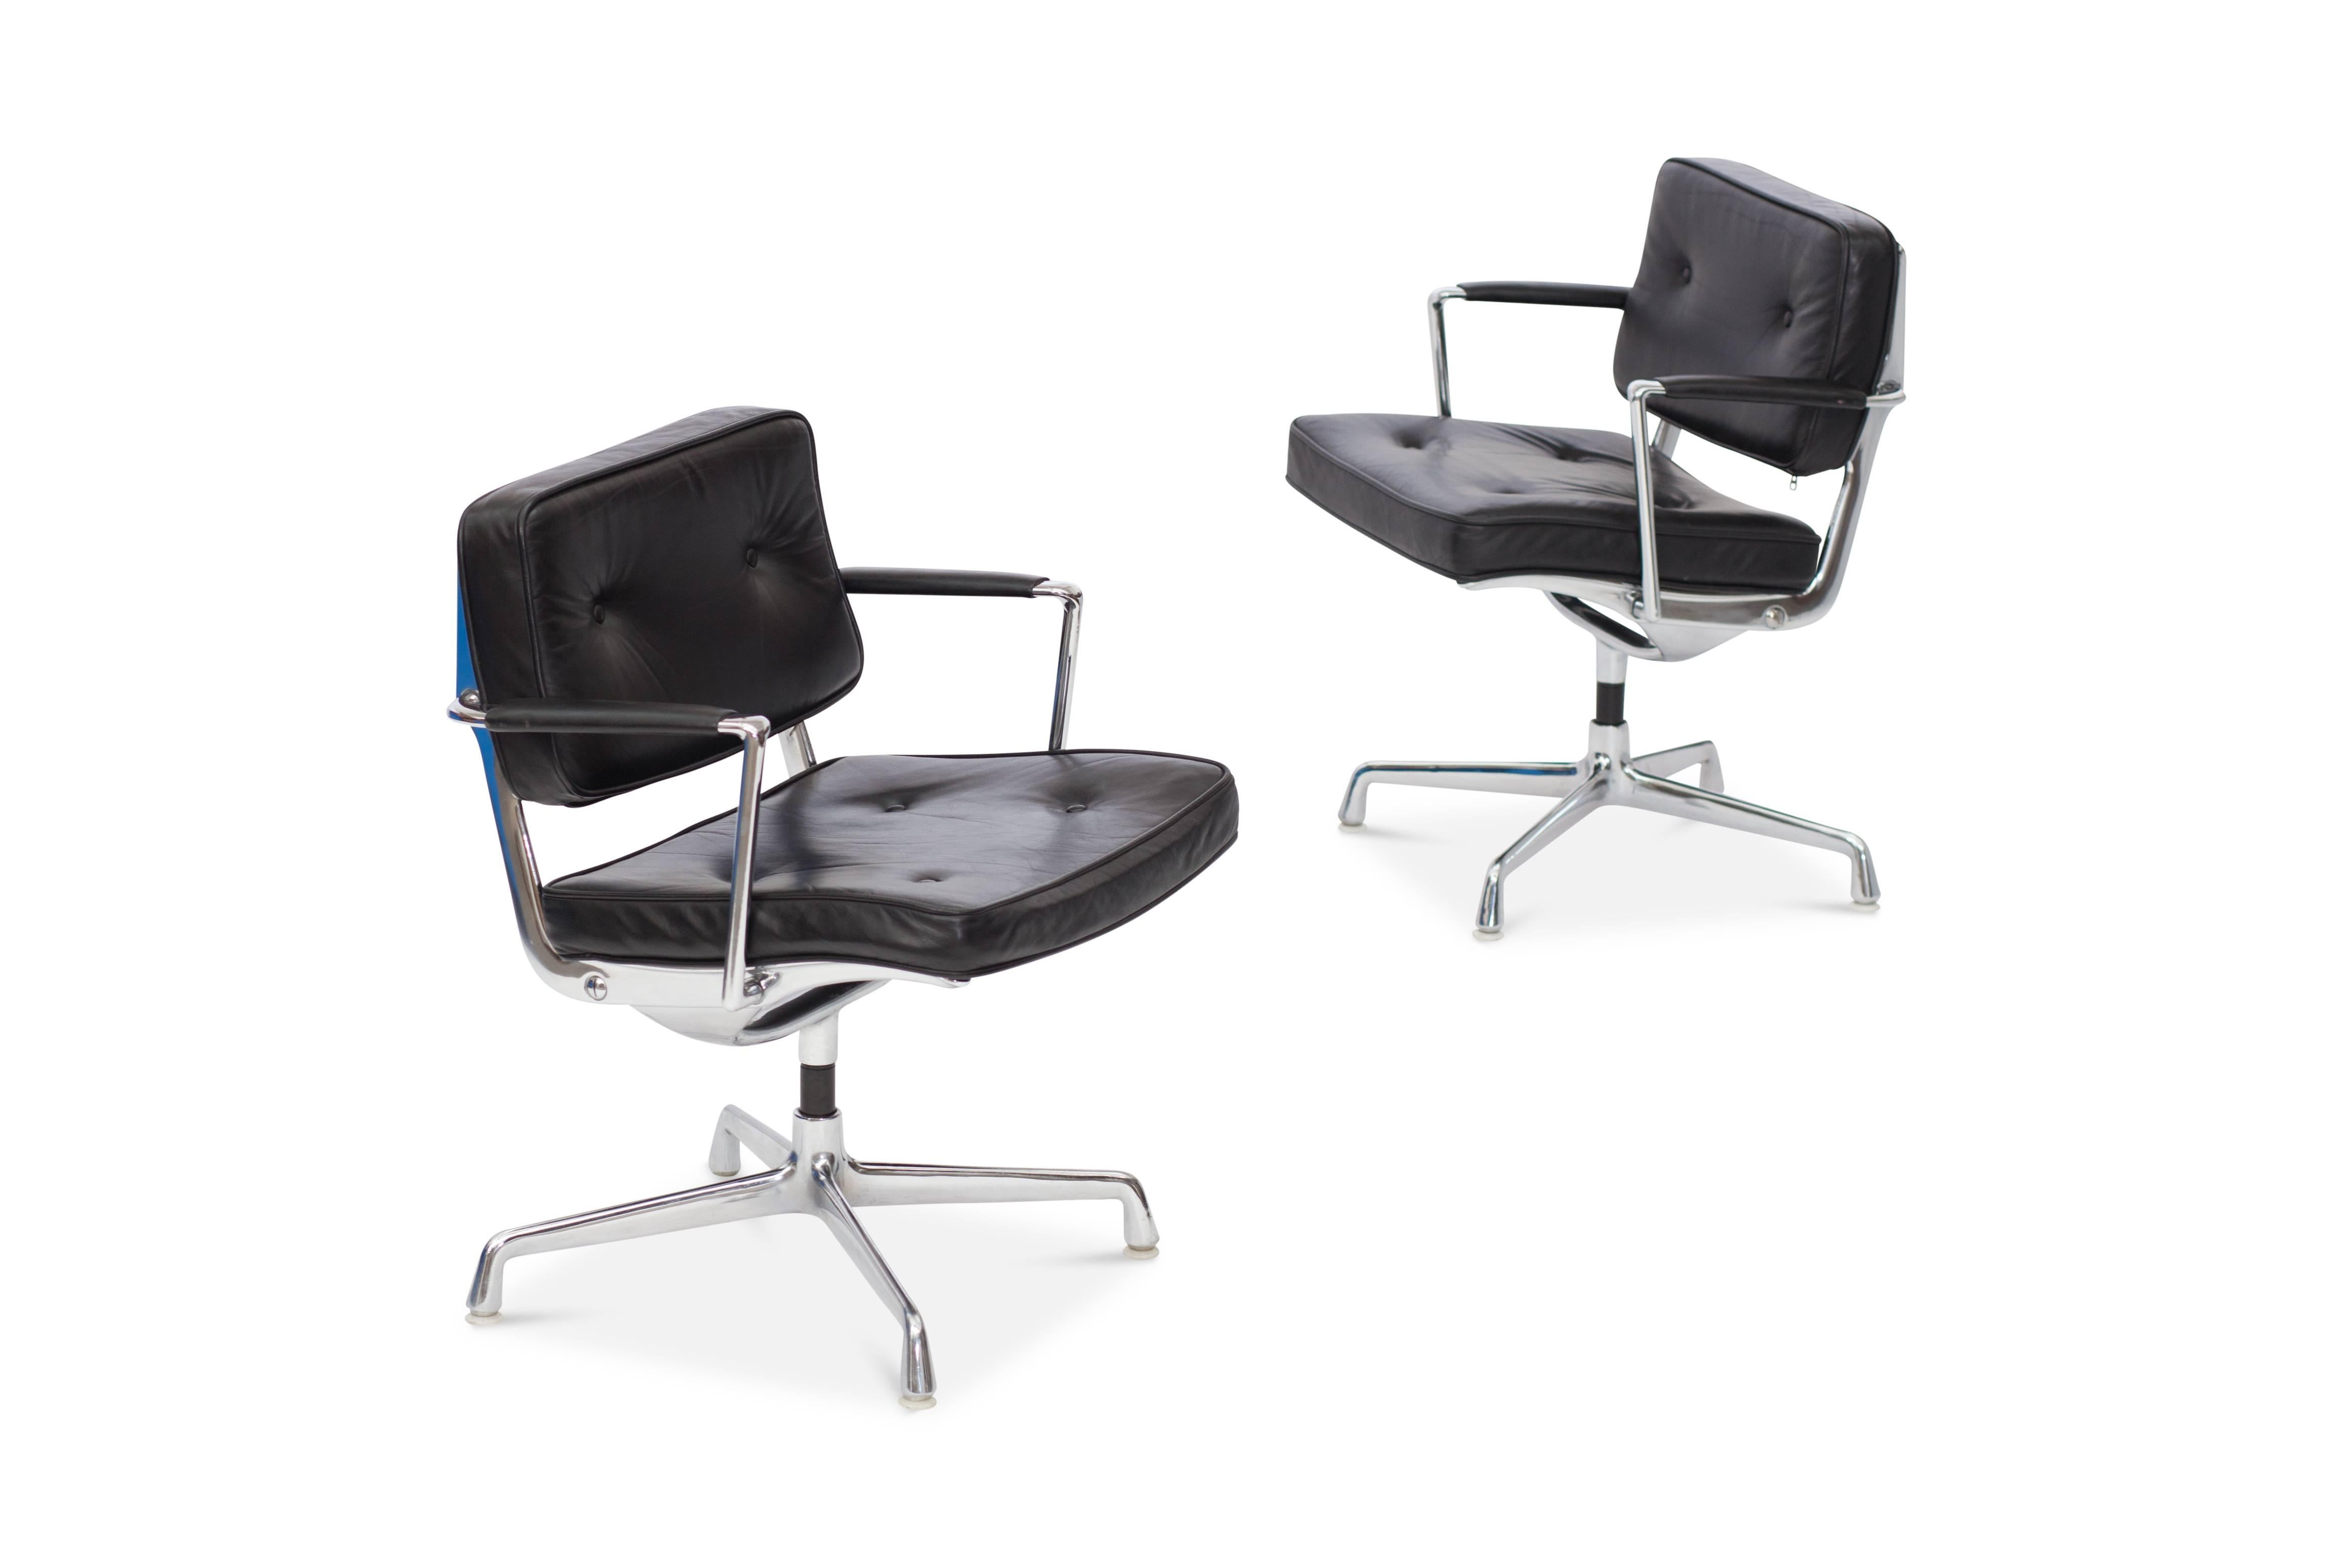 black eames chair fabric for reupholstering dining chairs intermediate desk in leather 1968 at 1stdibs charles and ray upholstery cast aluminum frame introduced